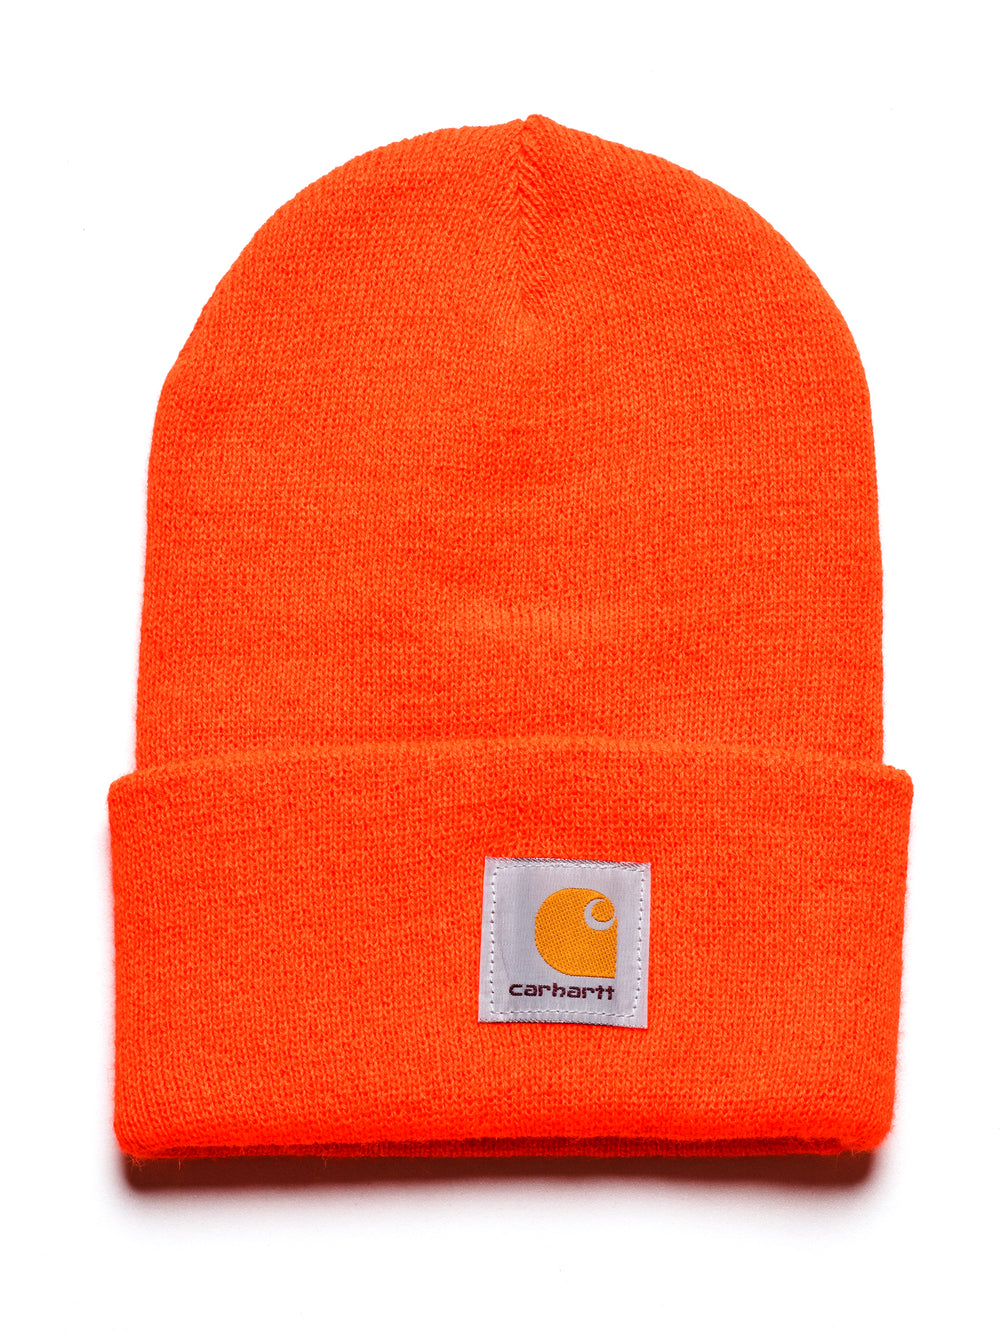 WATCH BEANIE - BRITE ORANGE